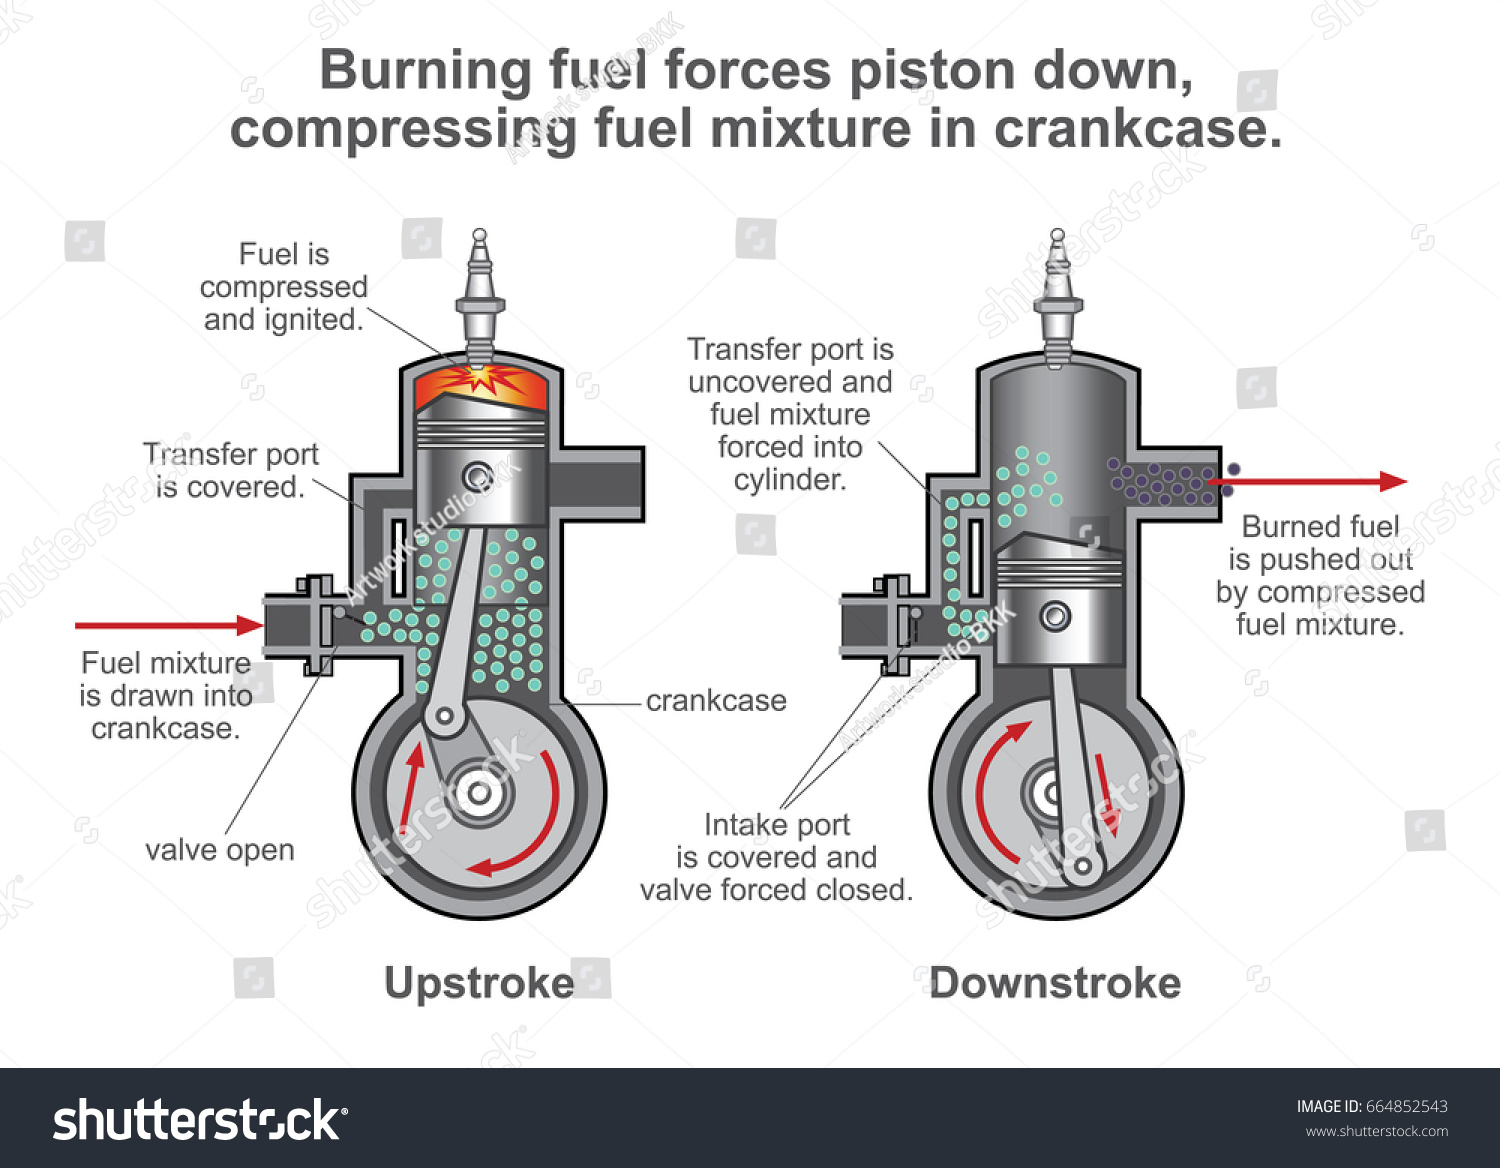 Internal combustion engine is a heat engine where the combustion of a fuel  occurs with an